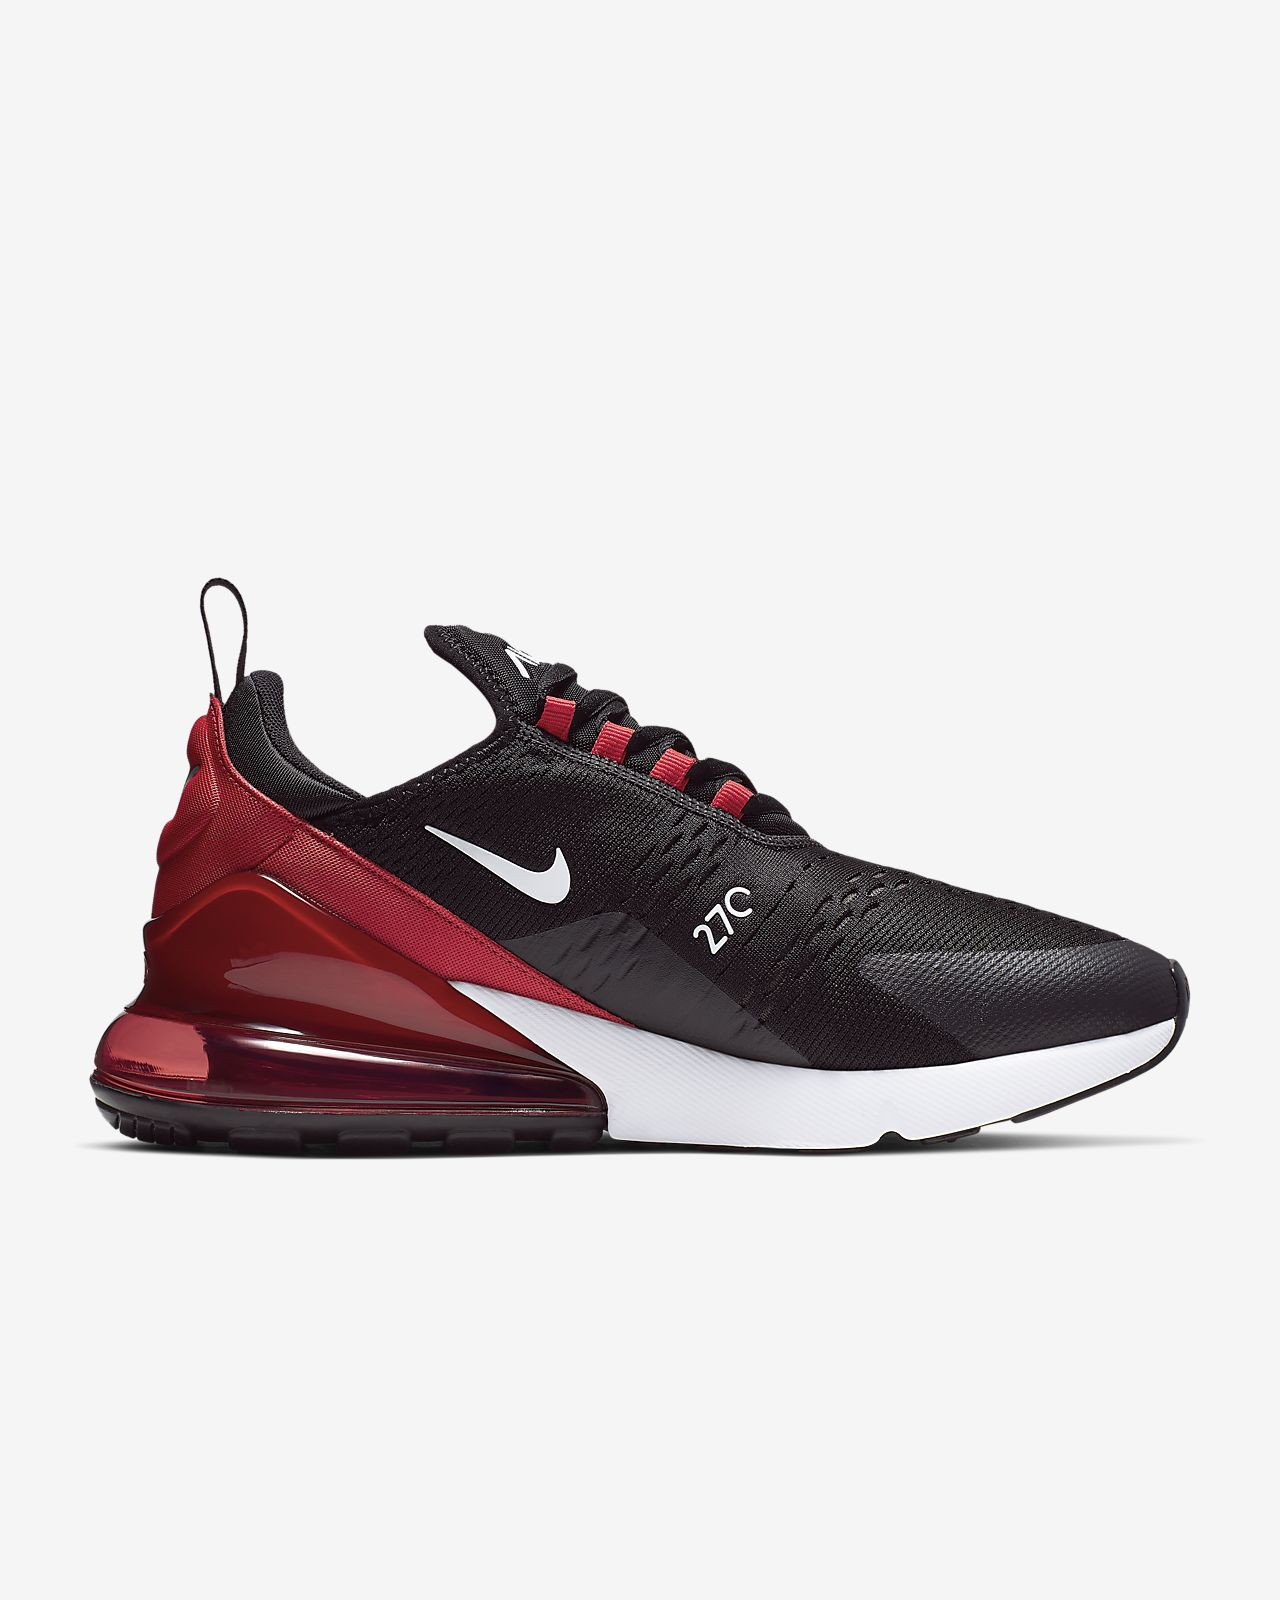 new concept b50a6 36c7f ... Nike Air Max 270 Herrenschuh